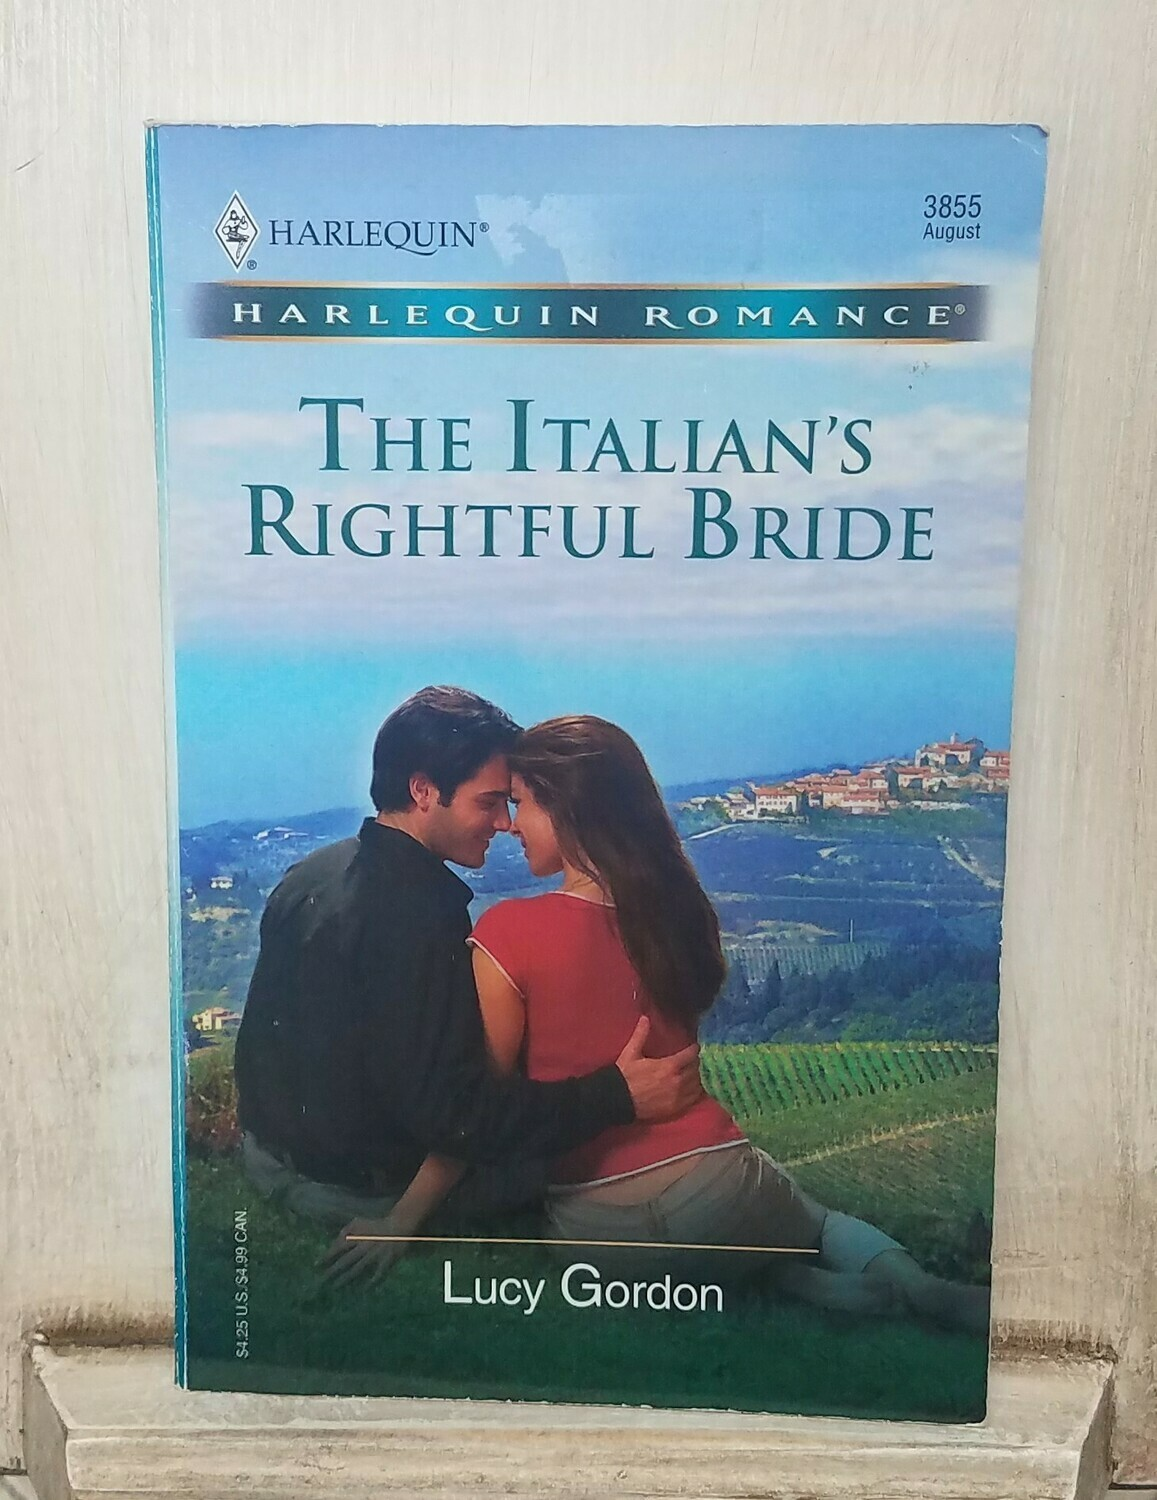 The Italian's Rightful Bride by Lucy Gordon